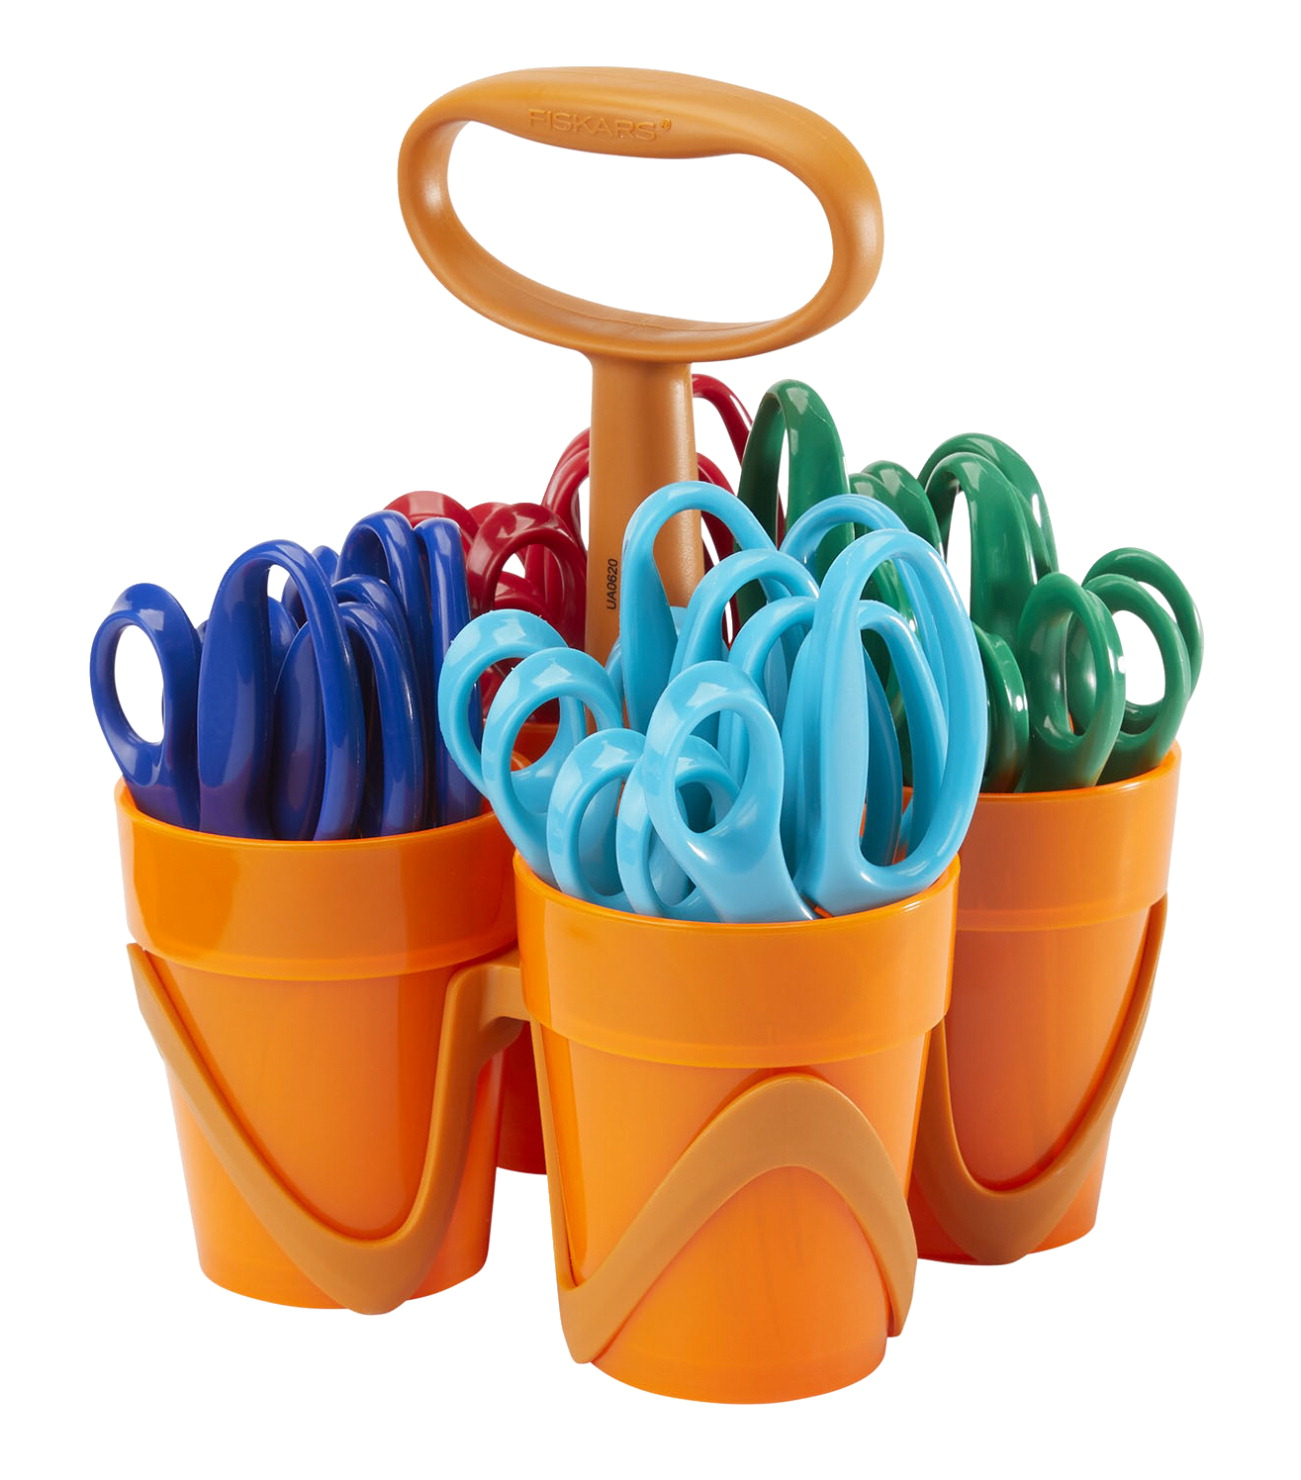 Fiskars 5 Inch Blunt Tip Kids Scissors Classroom Pack Caddy, Pack of 24